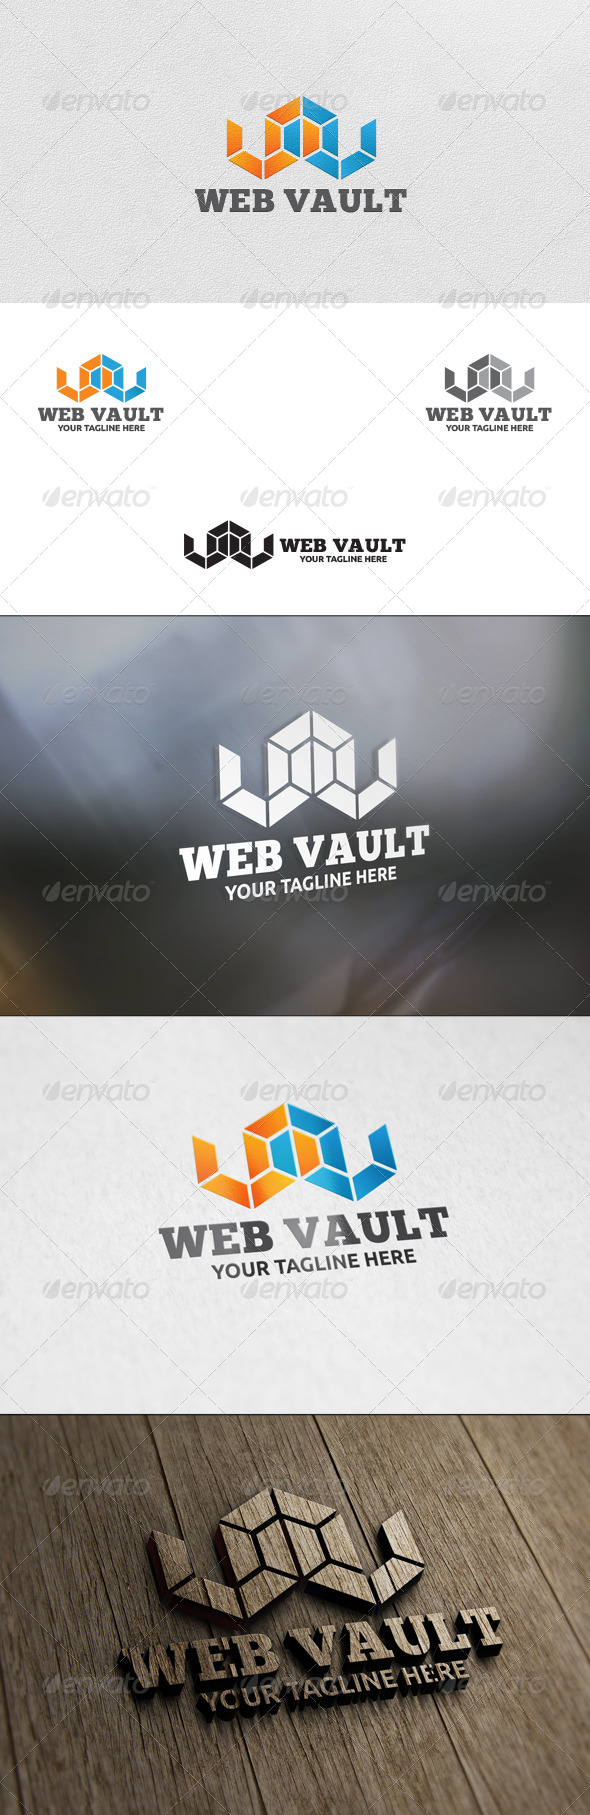 GraphicRiver Web Vault Logo Template 5855137